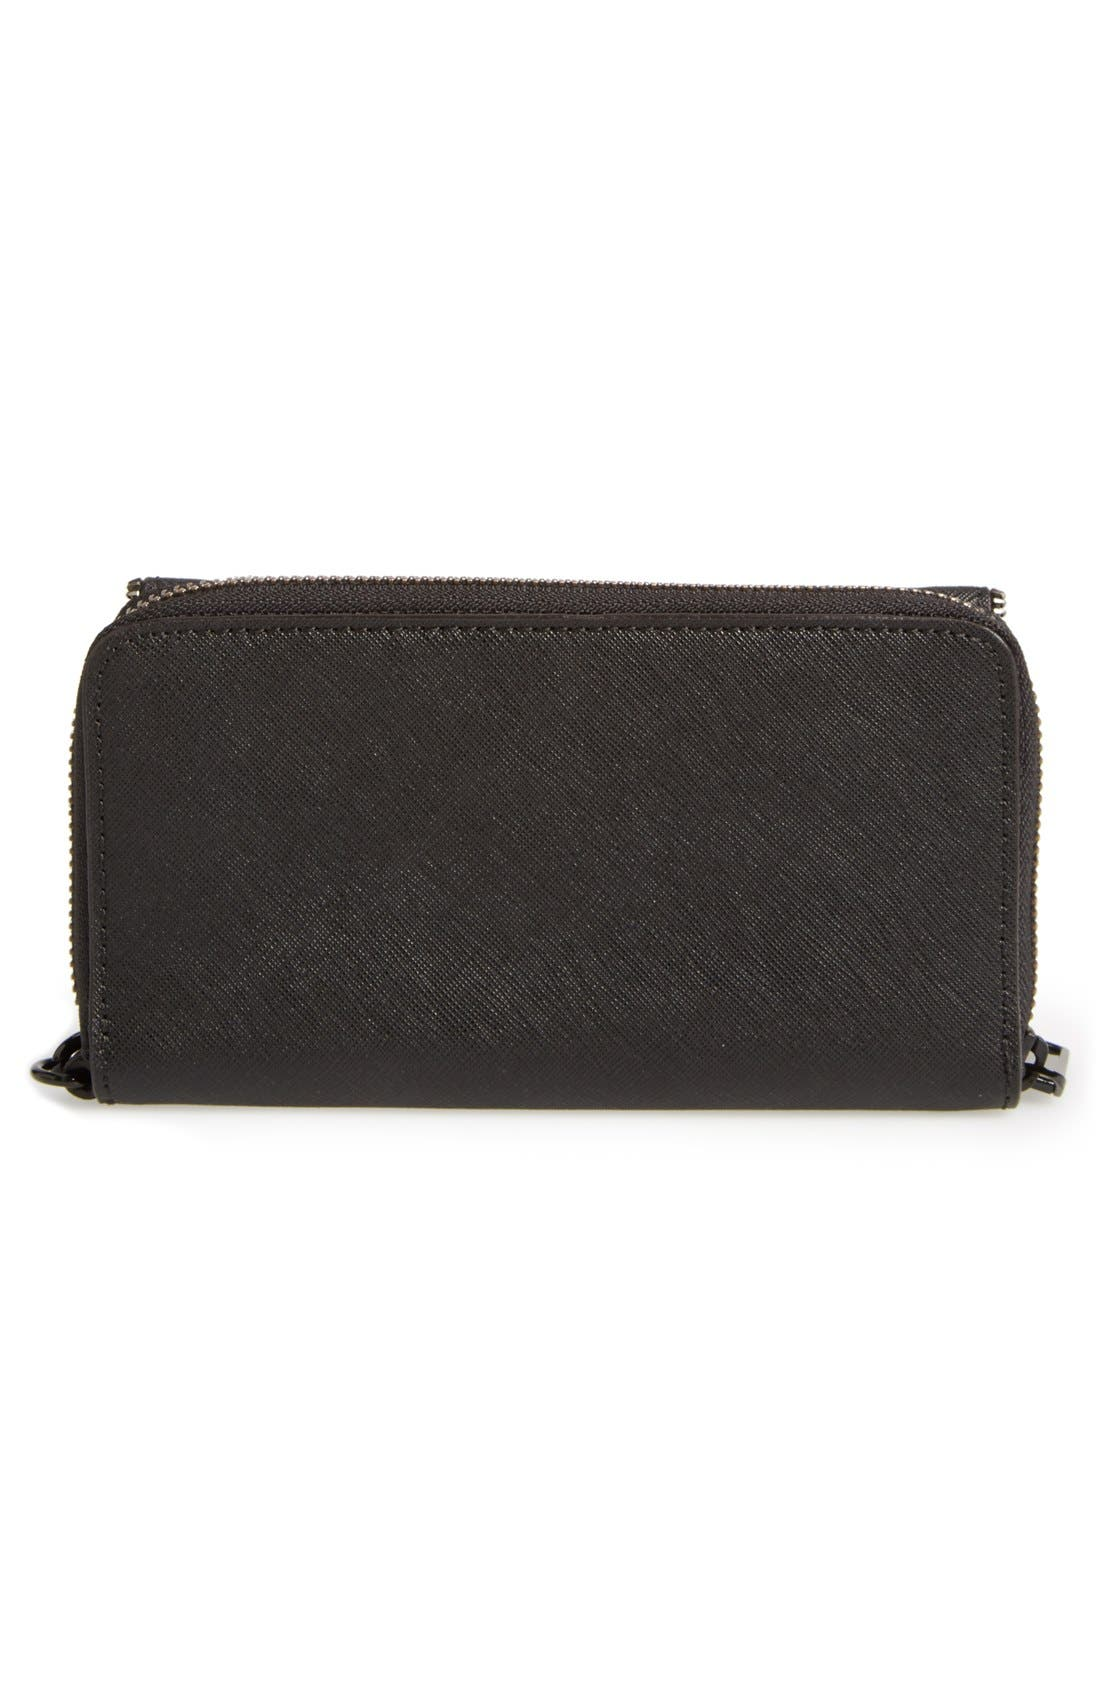 REBECCA MINKOFF,                             'Zoey Tech' Wristlet,                             Alternate thumbnail 3, color,                             001